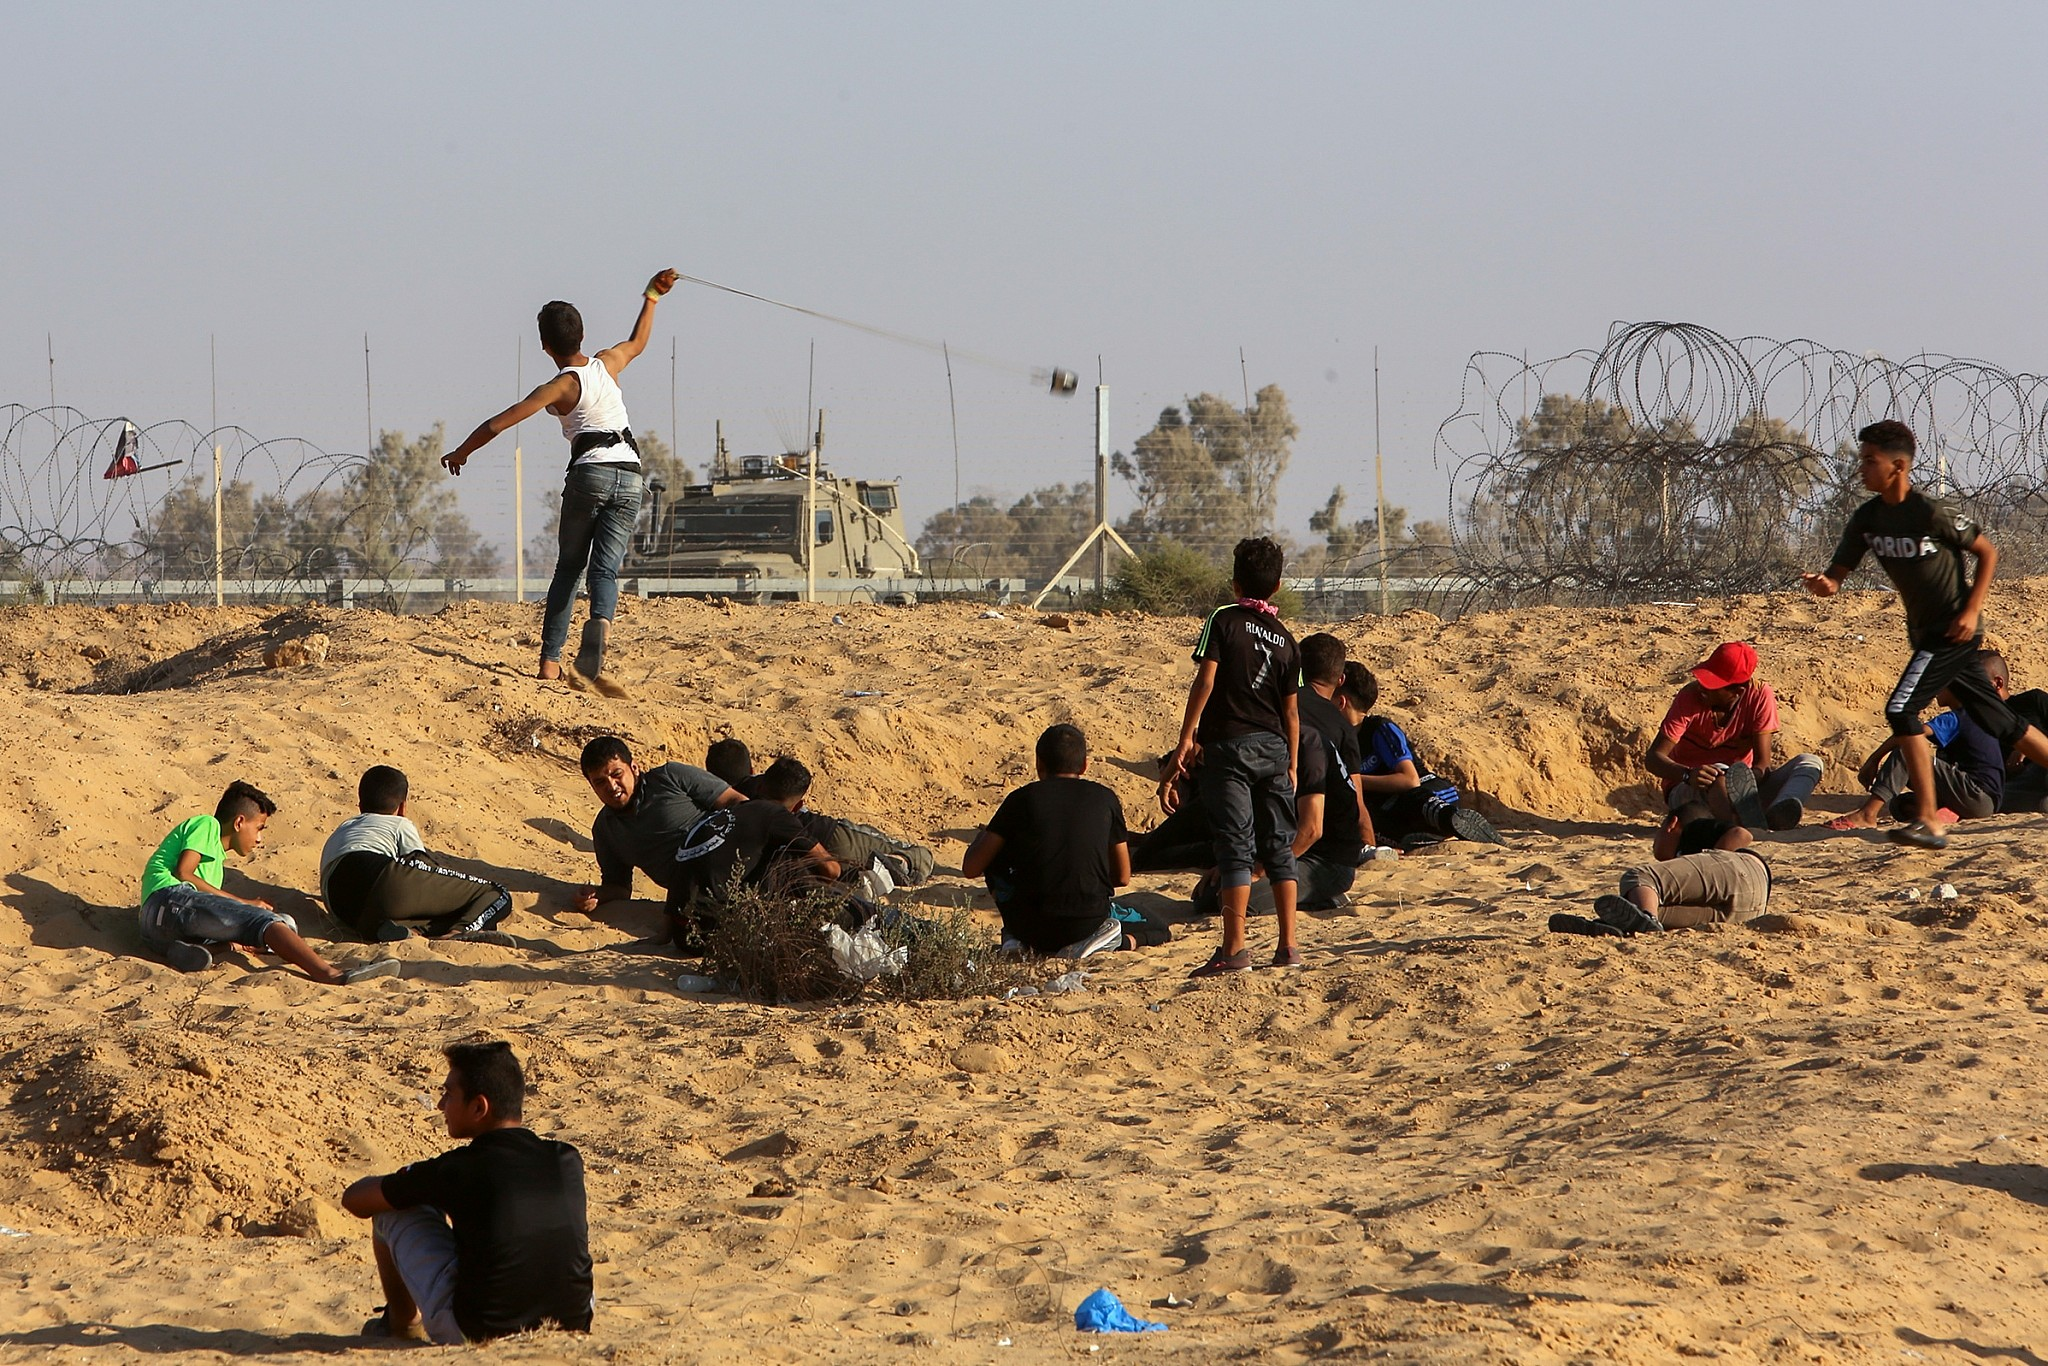 Egyptian delegation hastens to Gaza to mediate as tensions